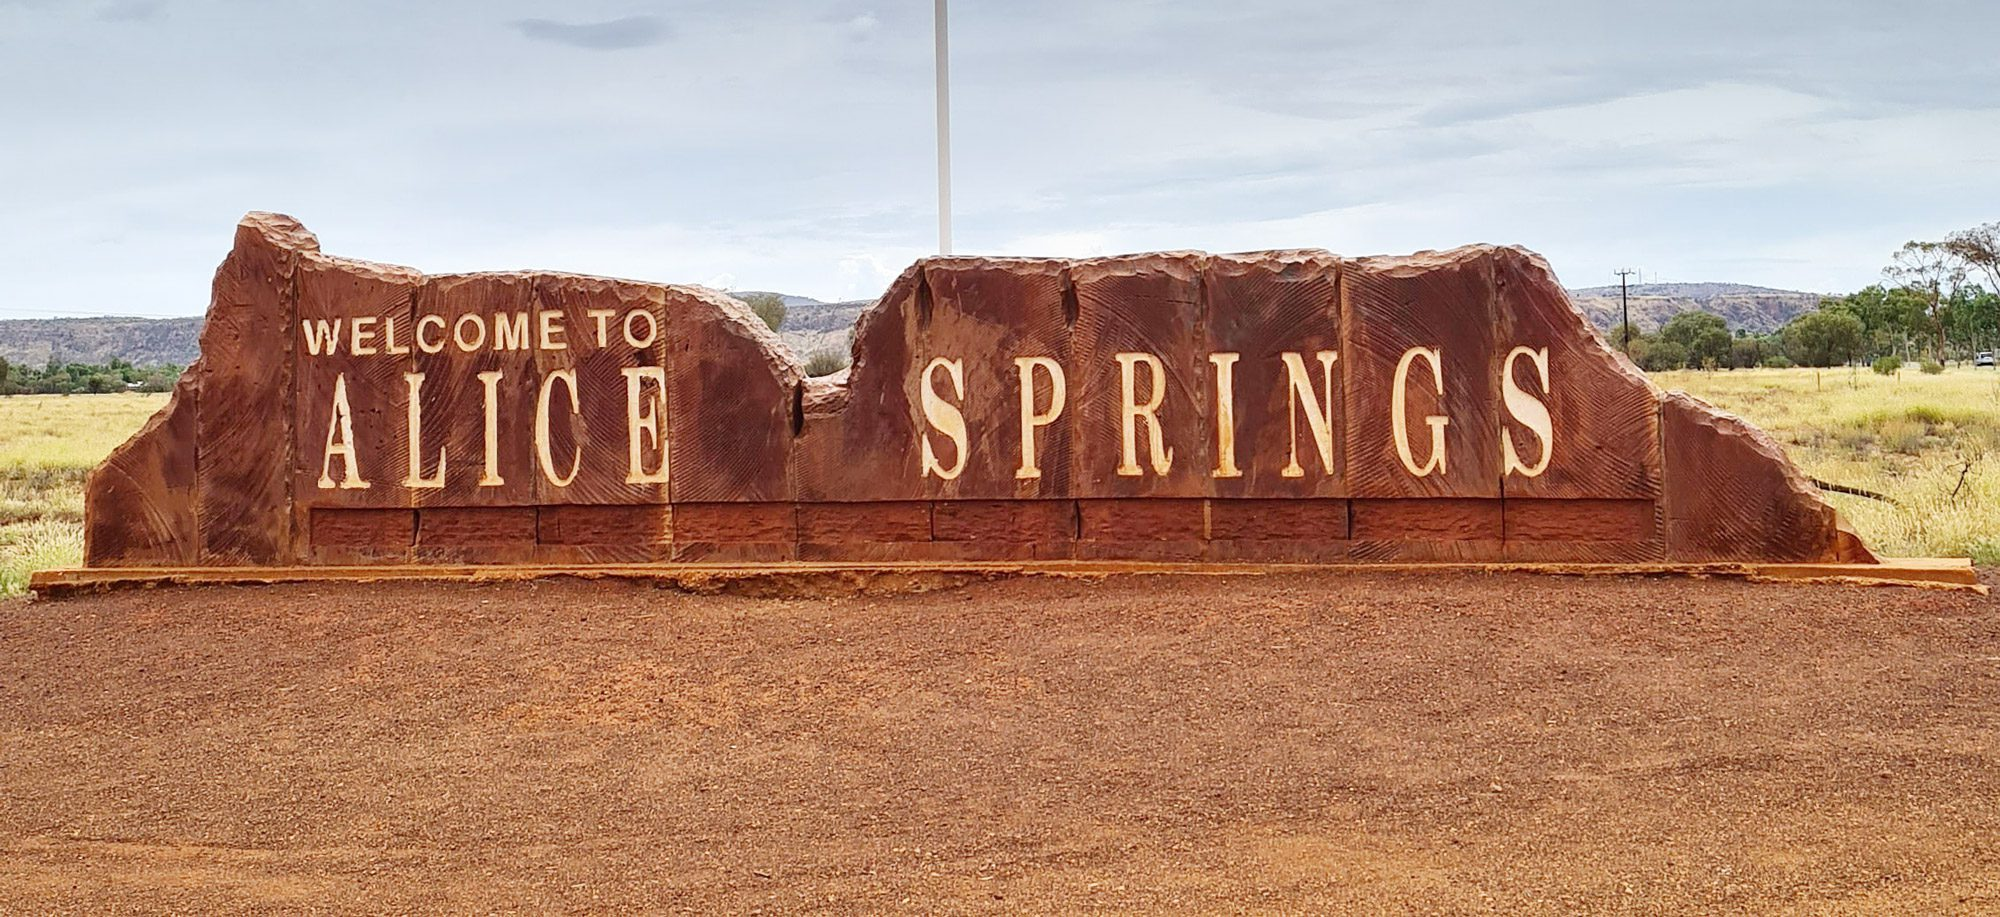 Sign: Welcome to Alice Springs